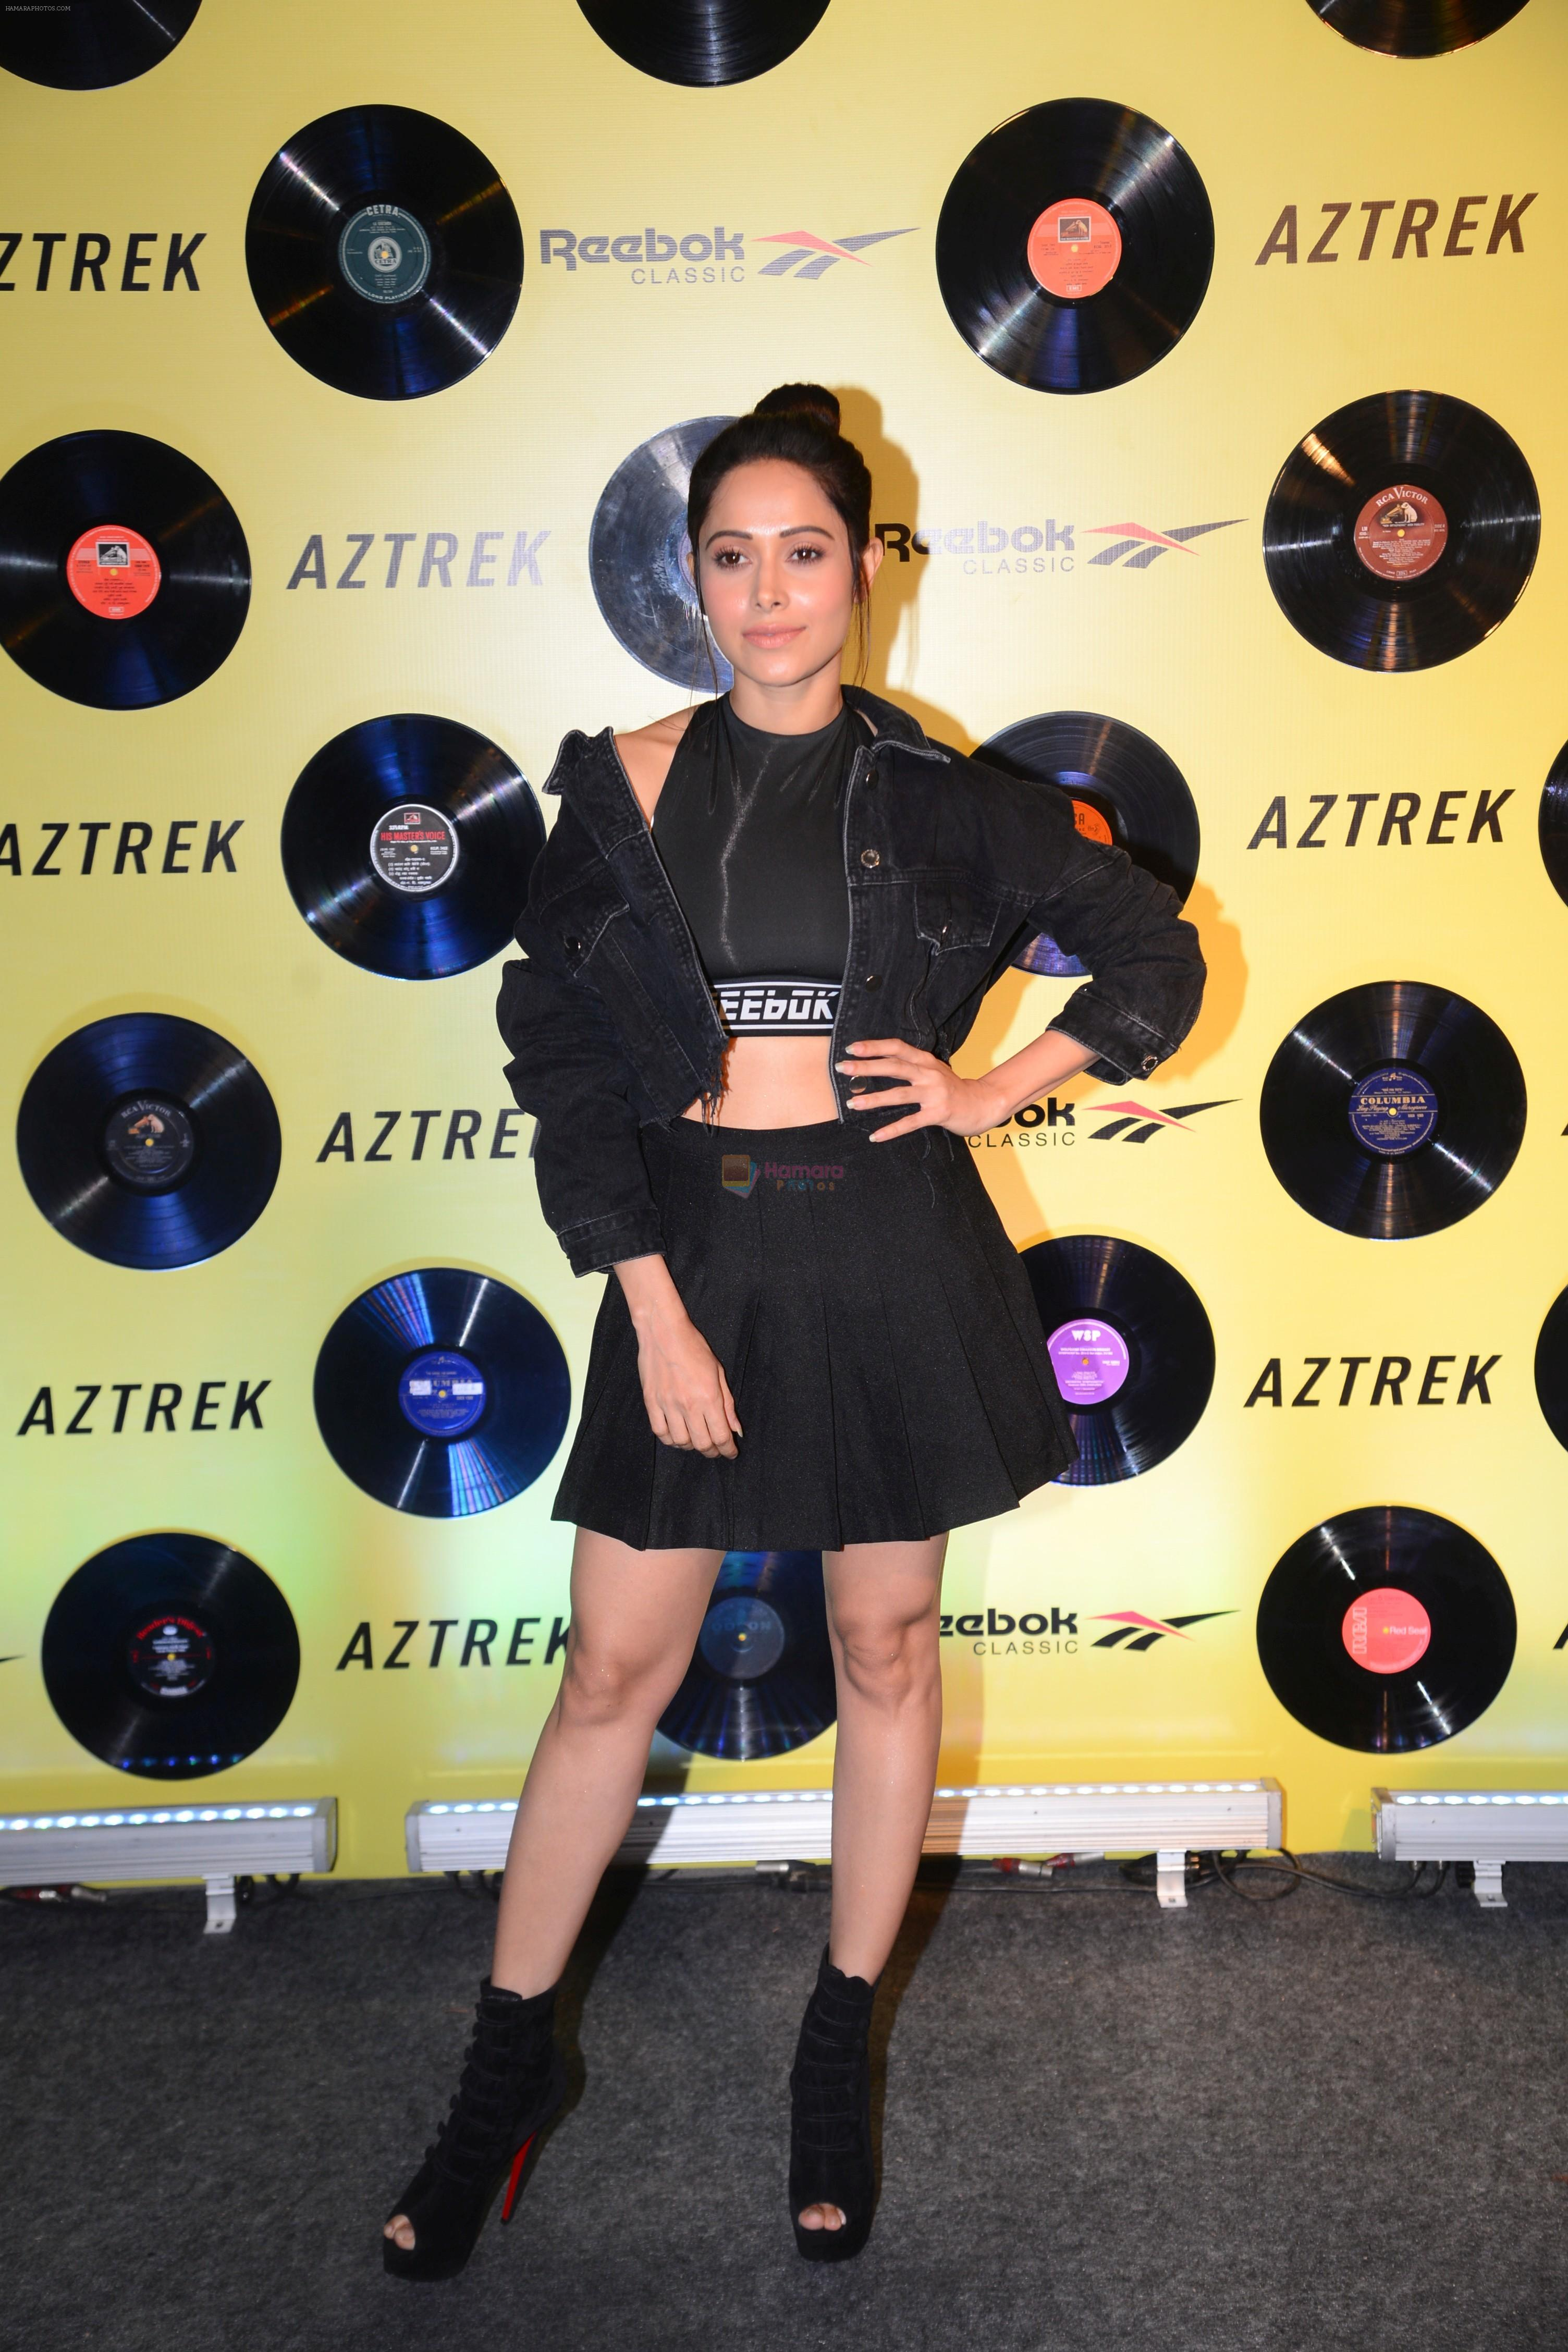 Nushrat Bharucha at Reebok Aztrek event at famous studio mahalaxmi on 17th March 2019